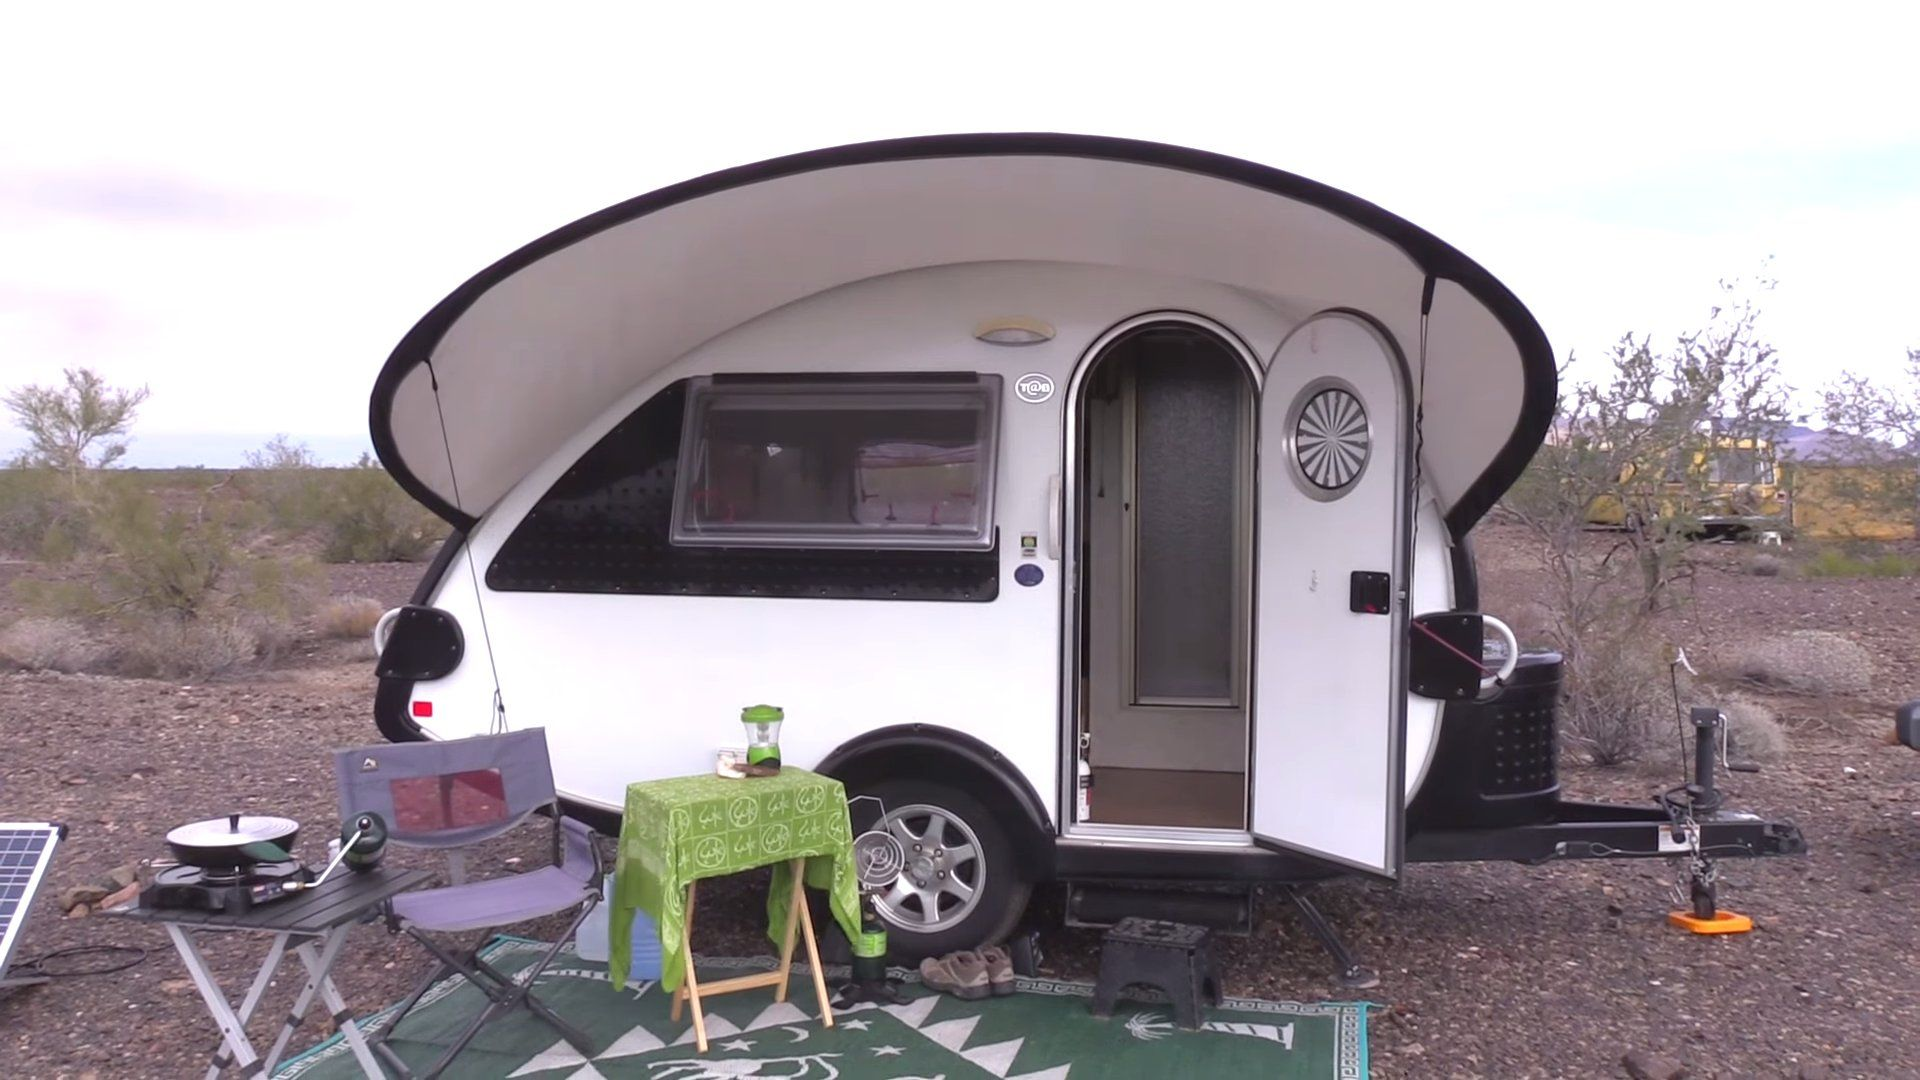 Especial Her Teardrop Trailer Jeep Beauer 3x Camper Retired Nomad Woman Living Sale Her Teardrop Trailer Tinytrailerscamper Retired Nomad Woman Living Usa curbed Beauer 3x Camper For Sale In Usa